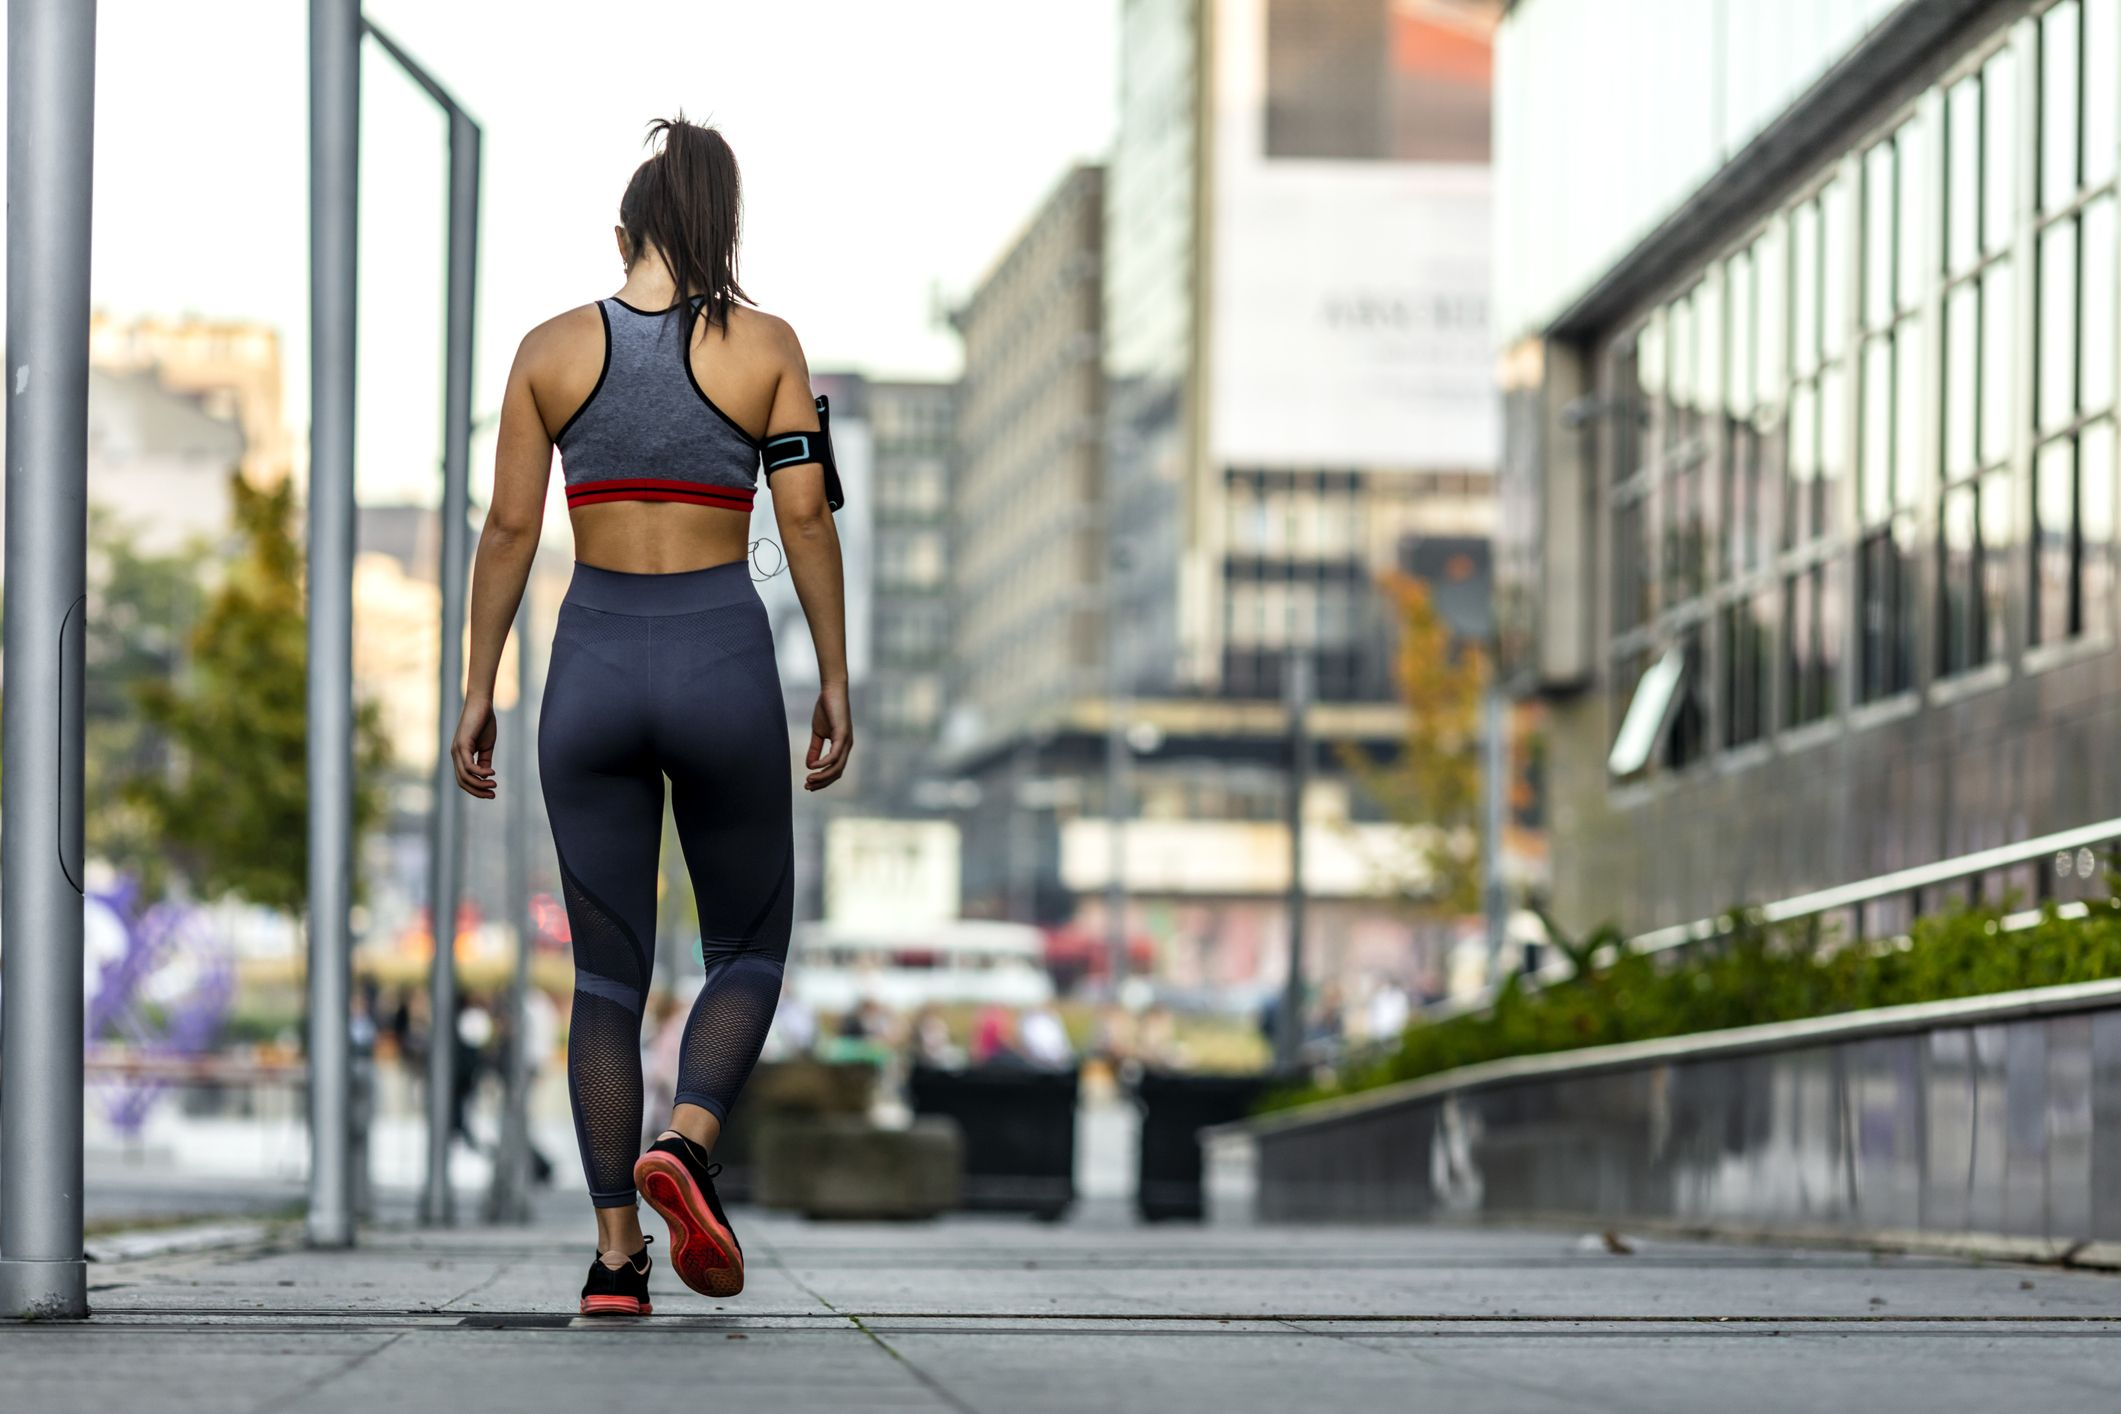 In Defense of Walking More and Running Less (Just Hear Me Out)